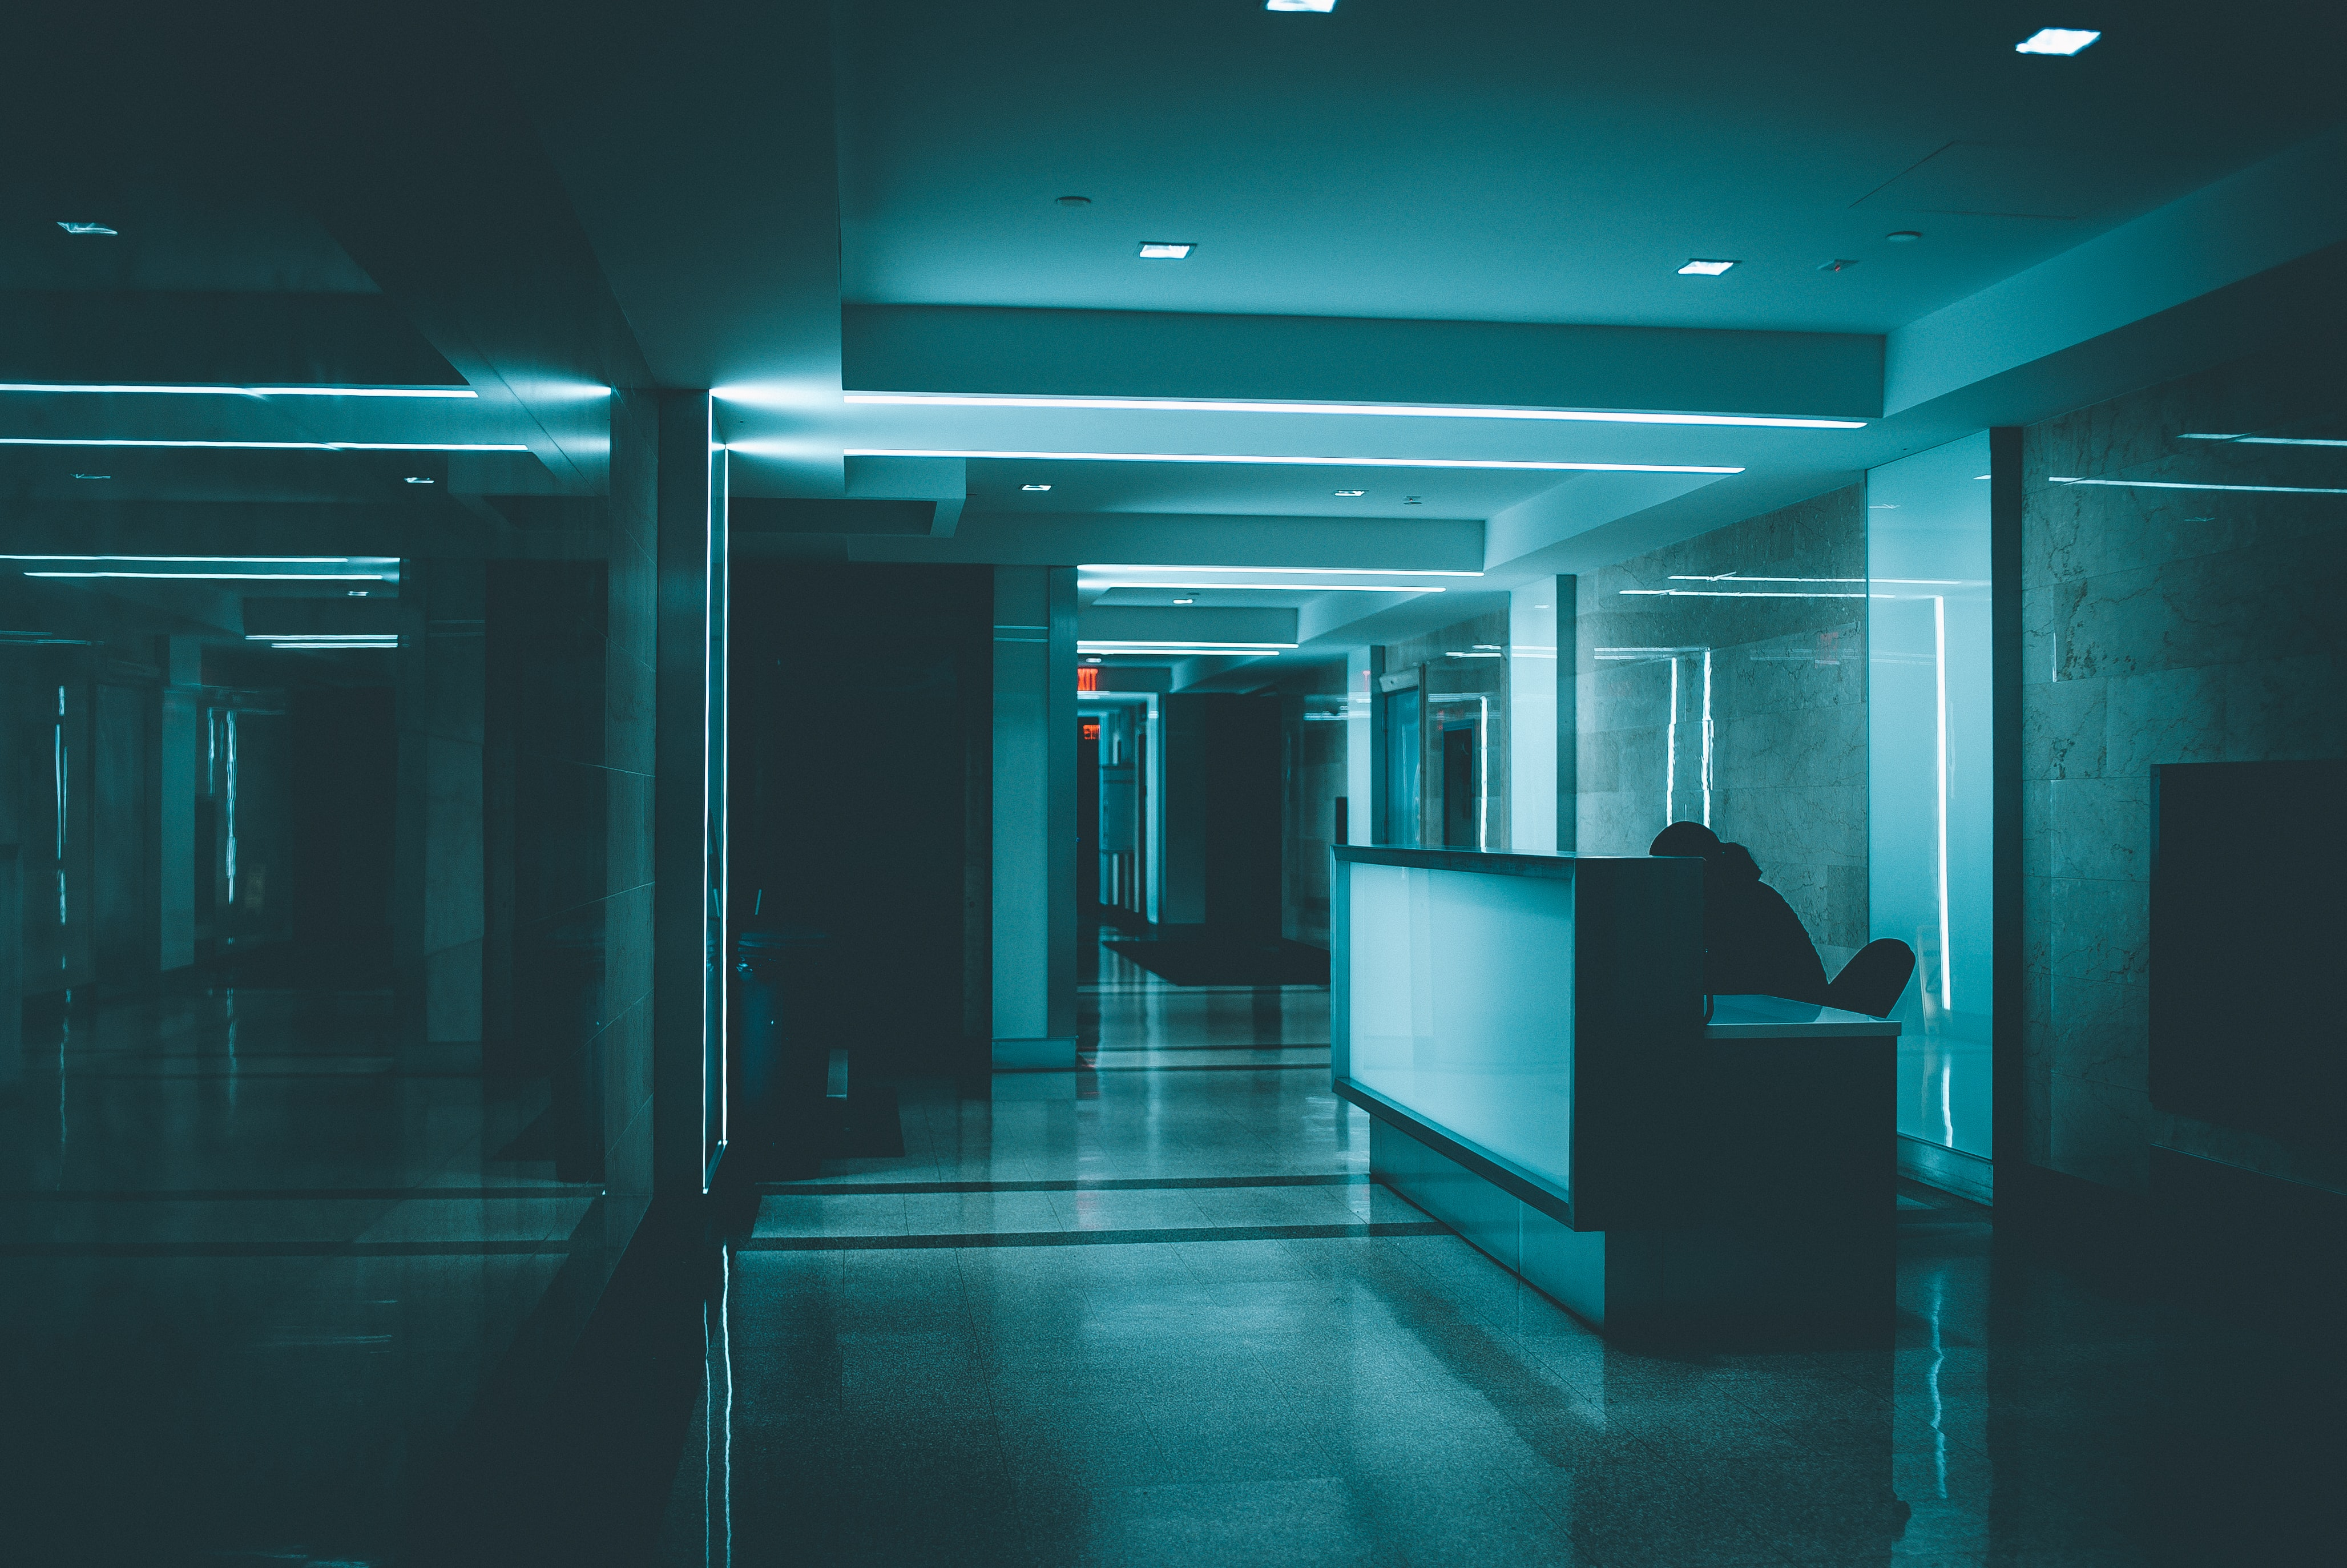 A person sits at a desk in a corridor lit by blue light